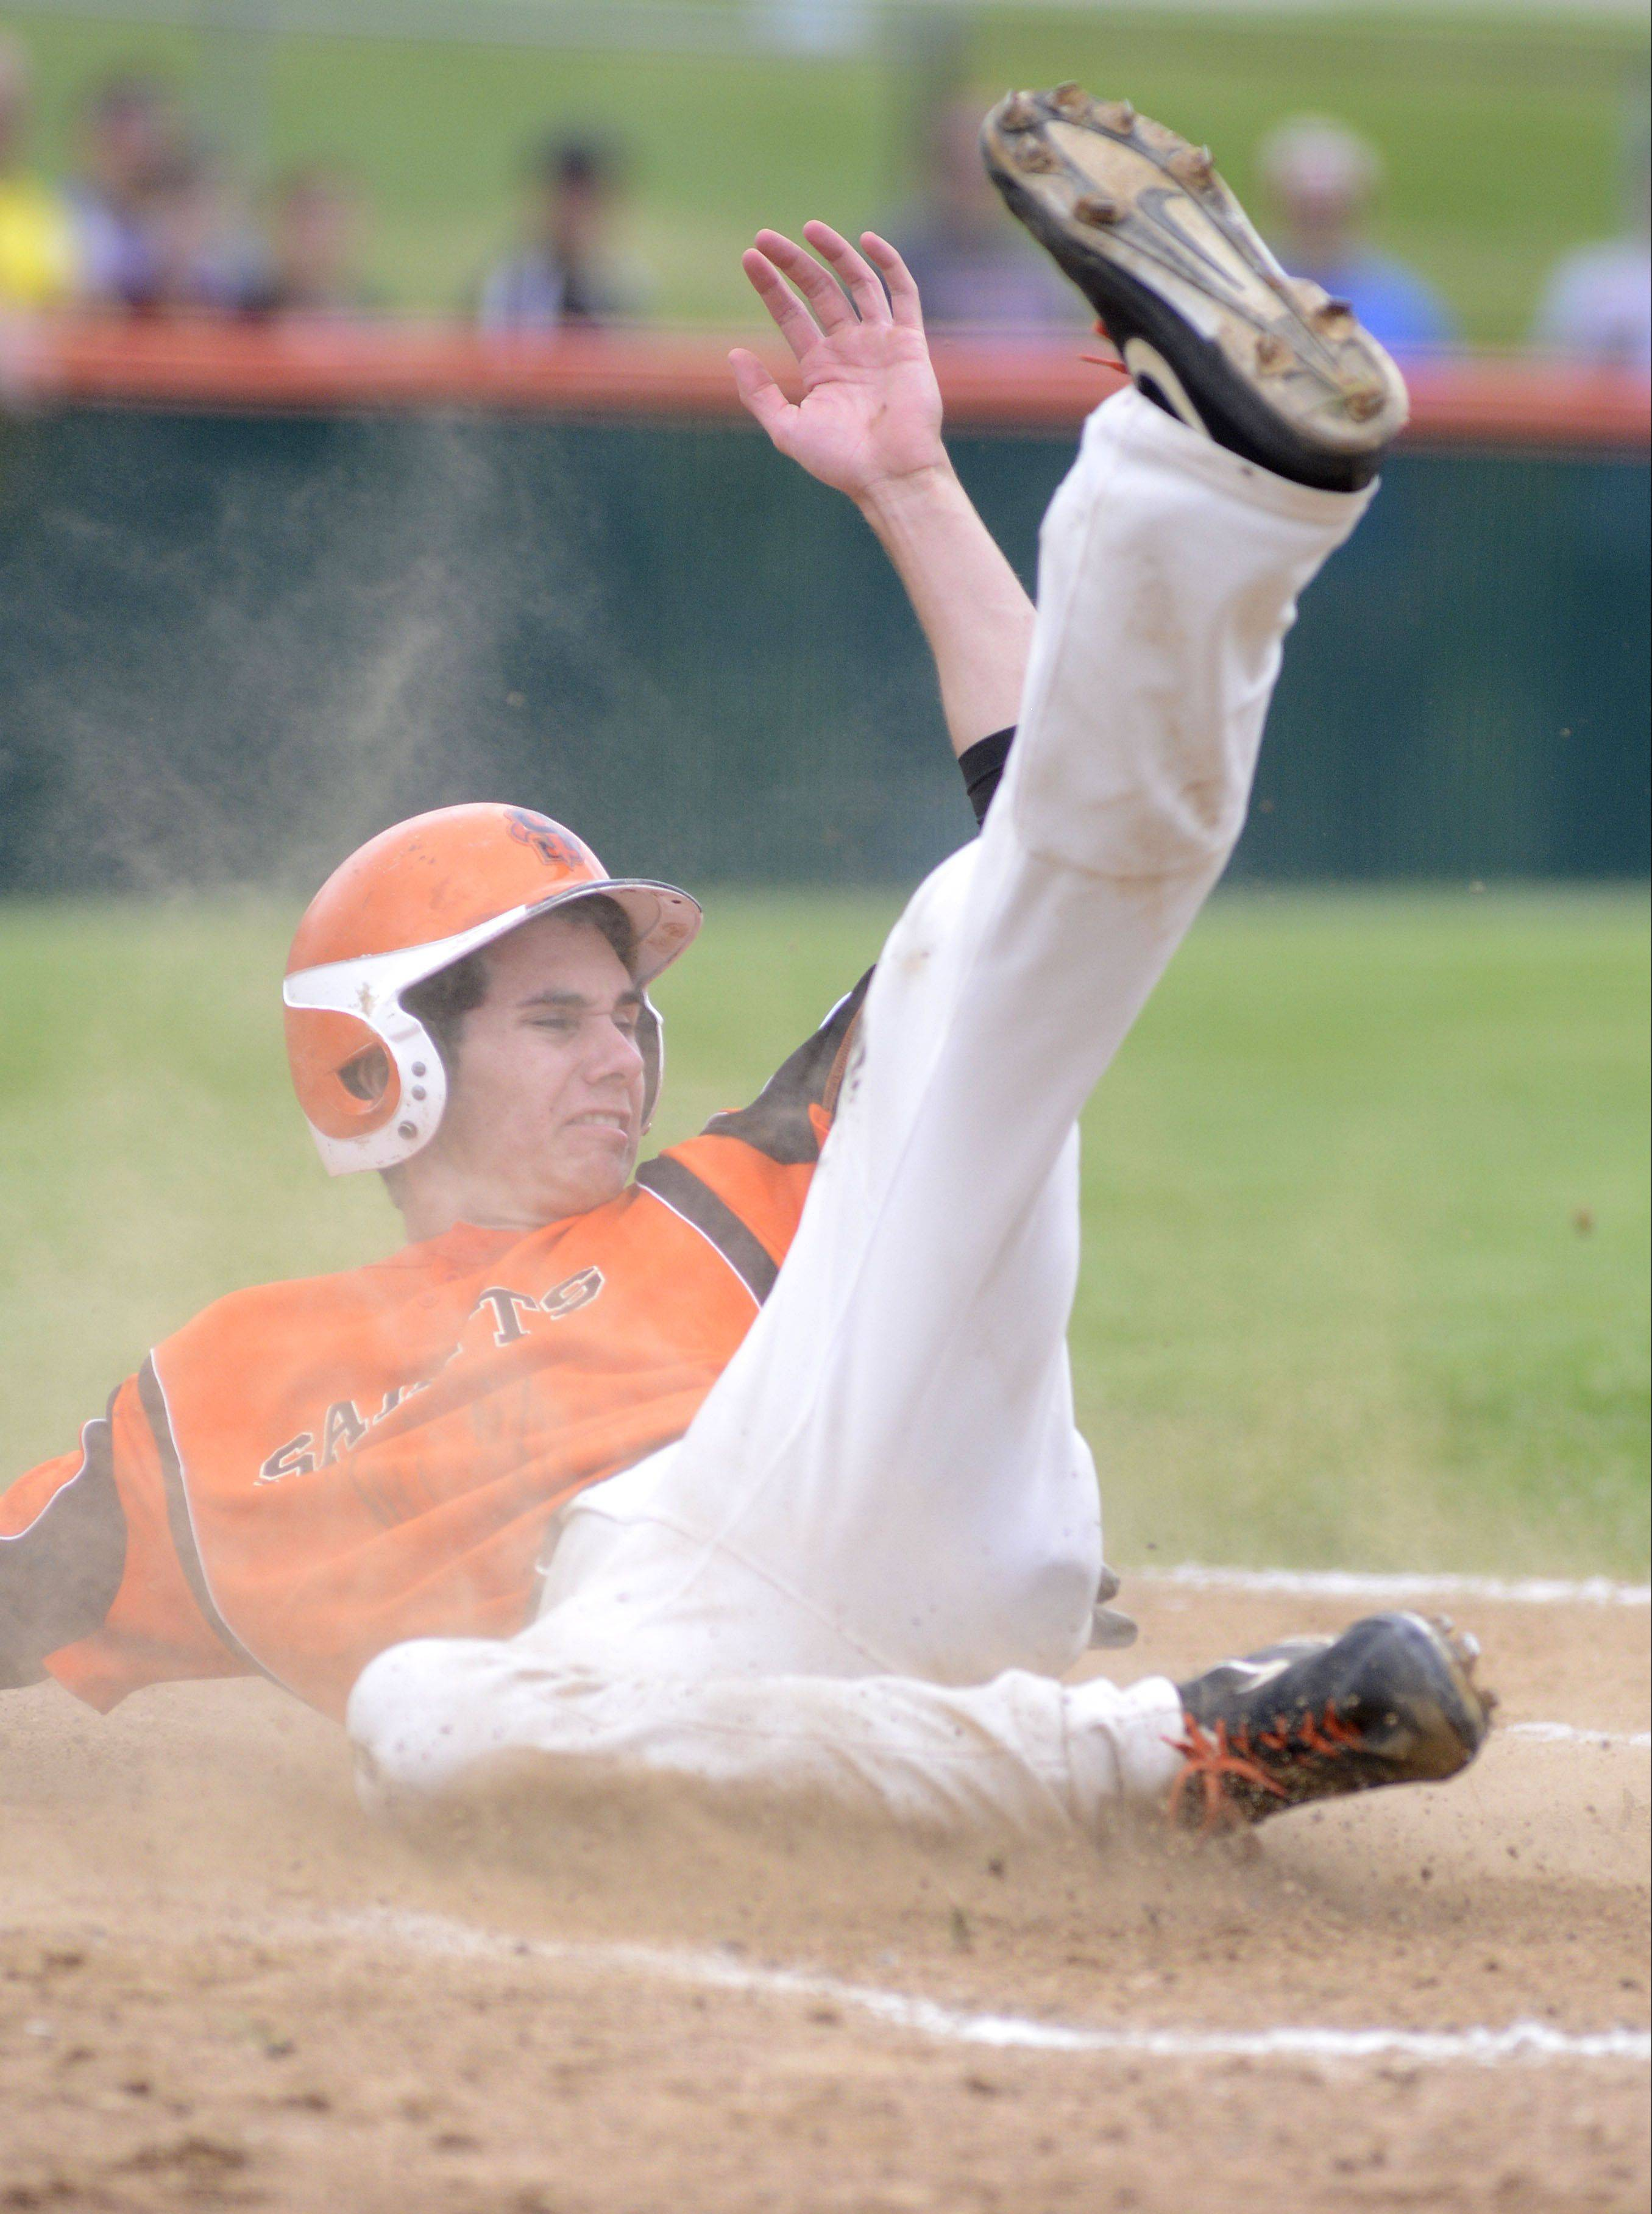 St. Charles East's Sean Dunne slides safely into home plate in the fifth inning.